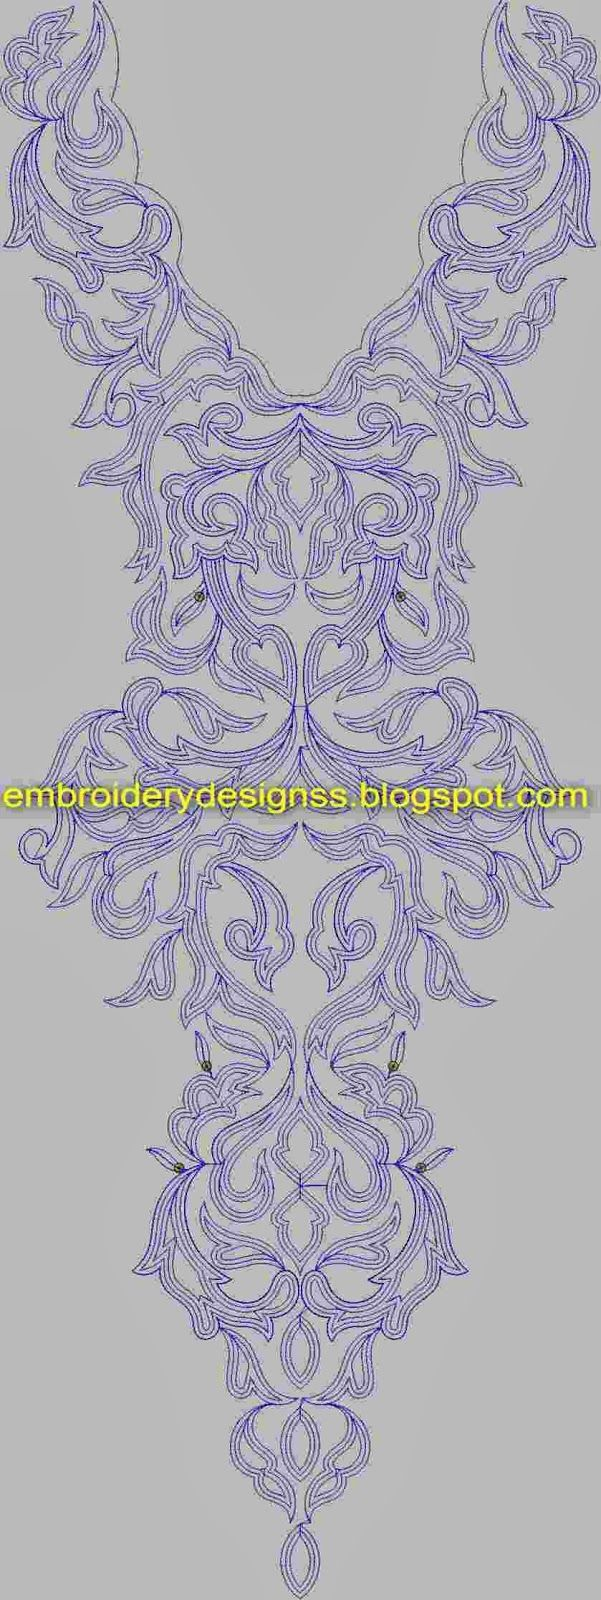 Afsa4 | Embroidery Designs